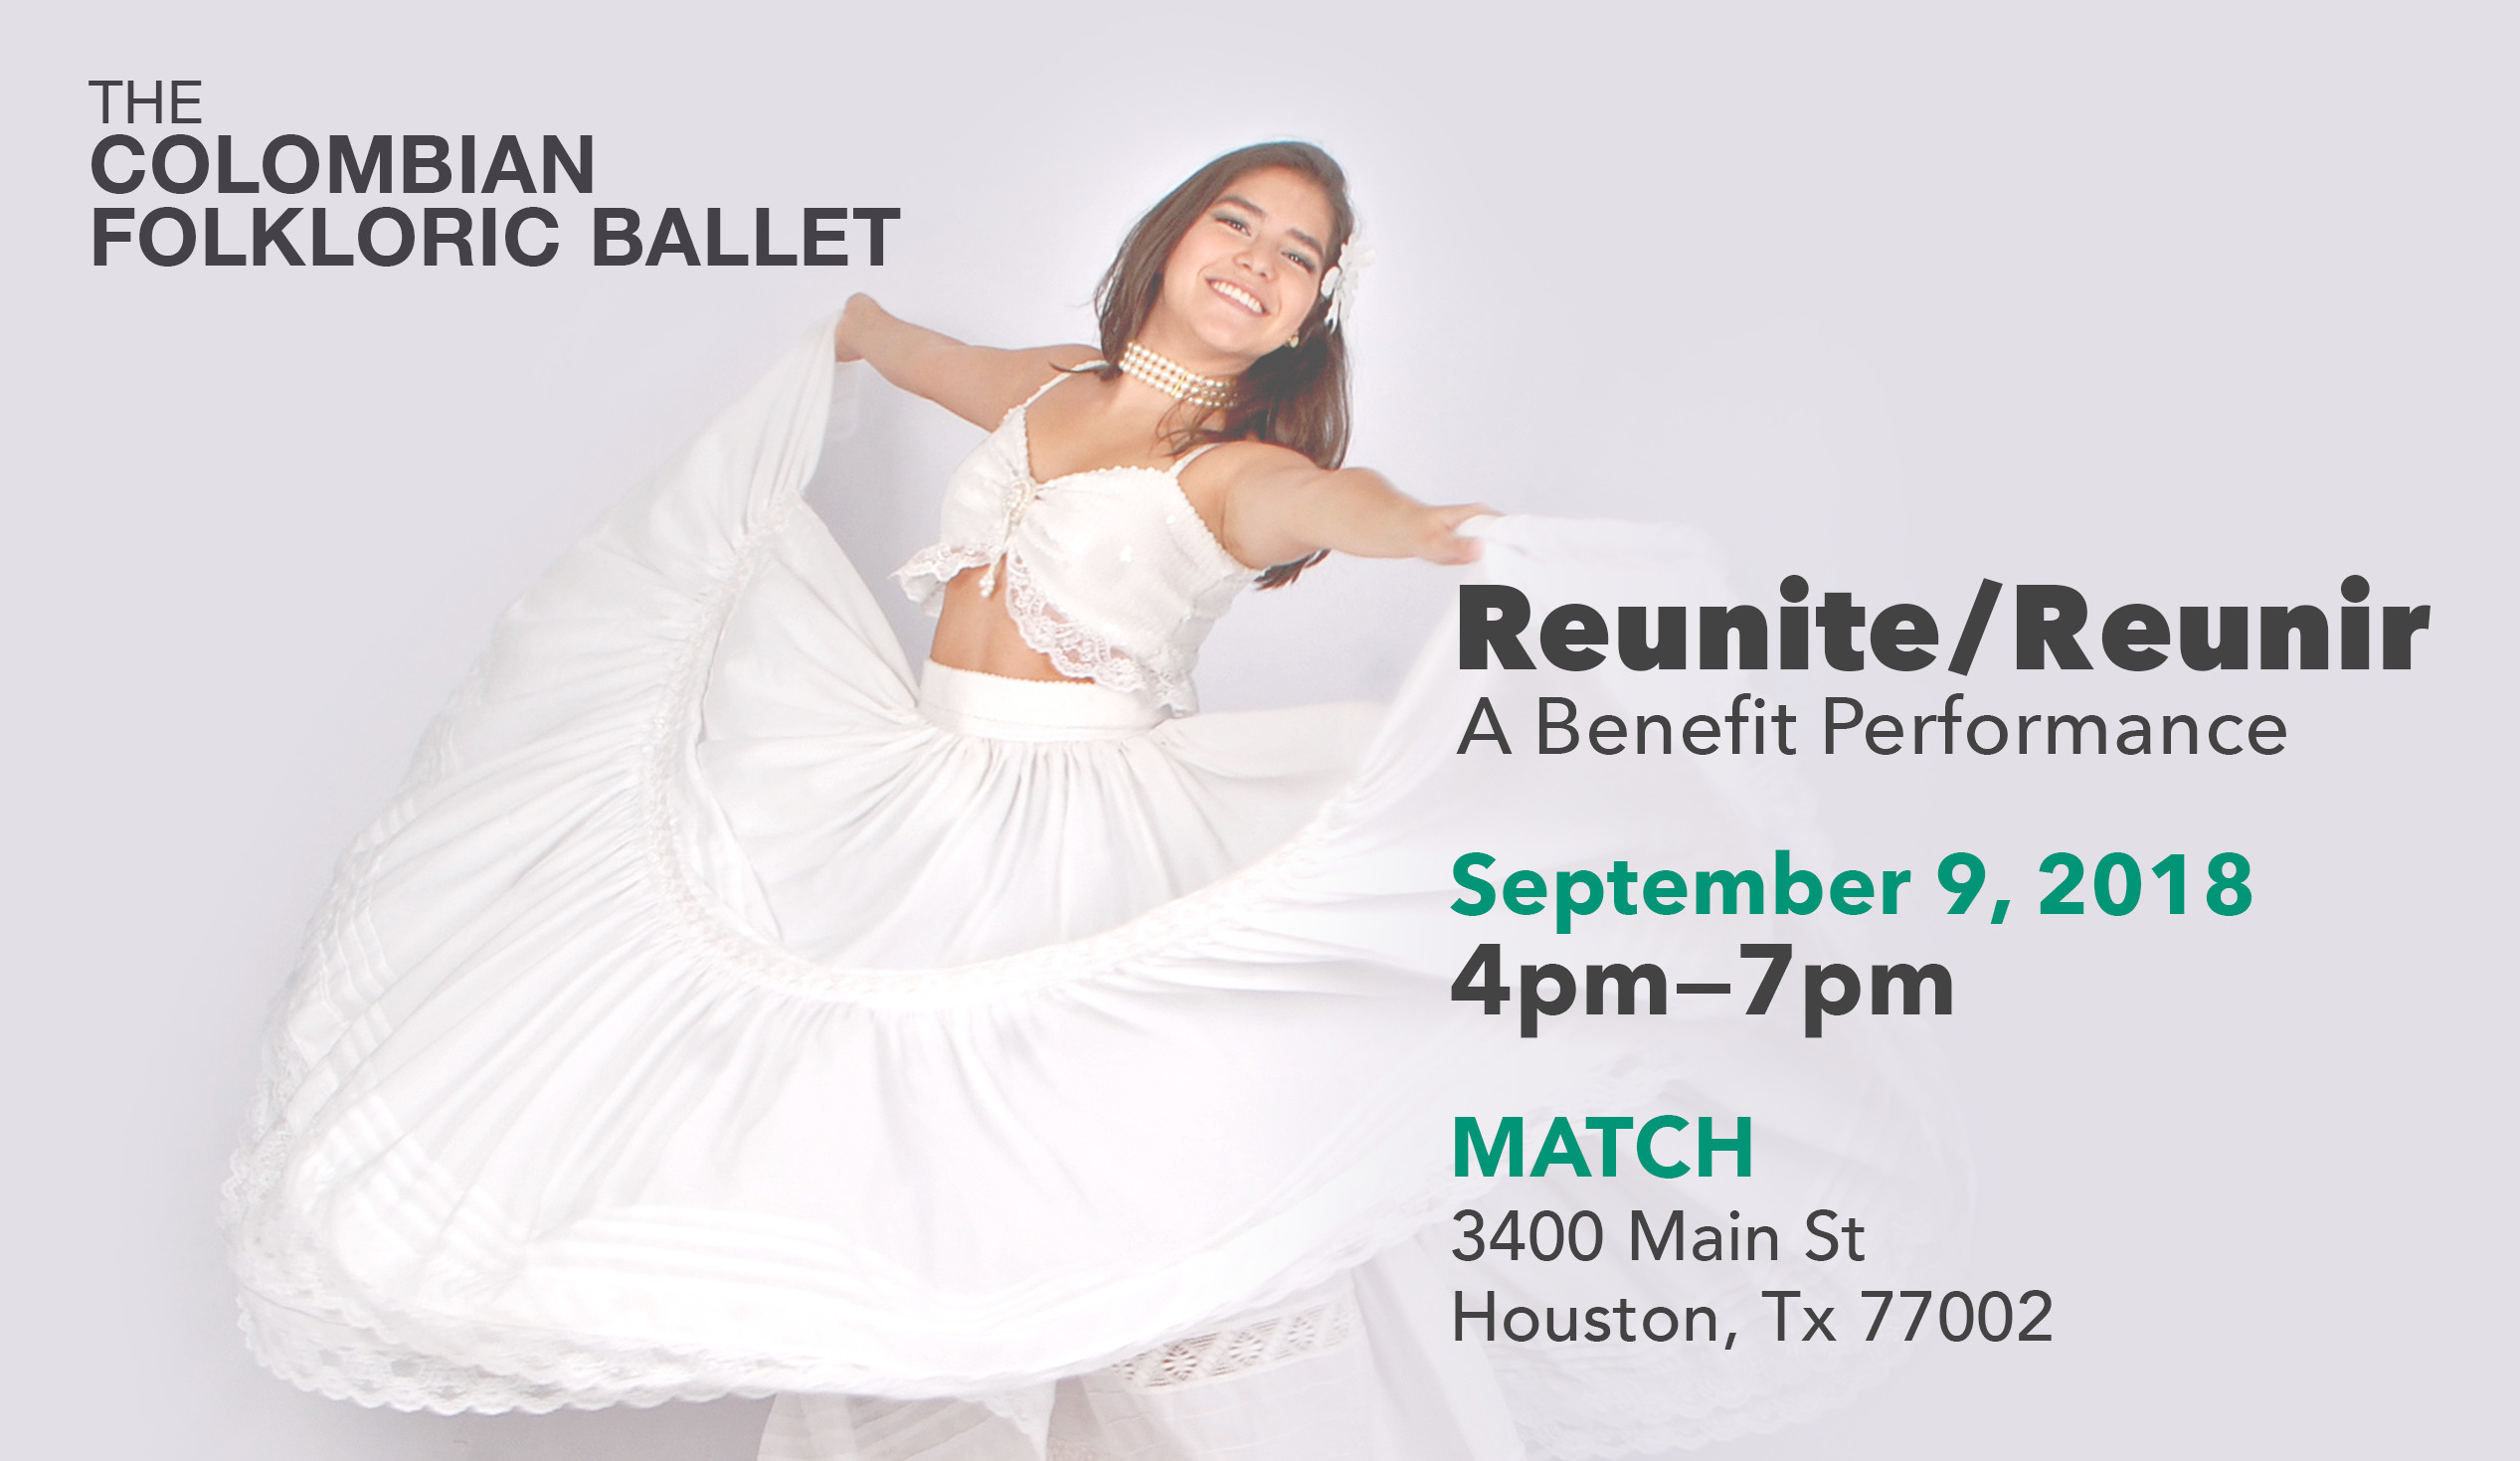 Reunite/Reunir: A Benefit Performance. September 9, 2018 4pm—7pm. MATCH 3400 Main St Houston, Tx 77002